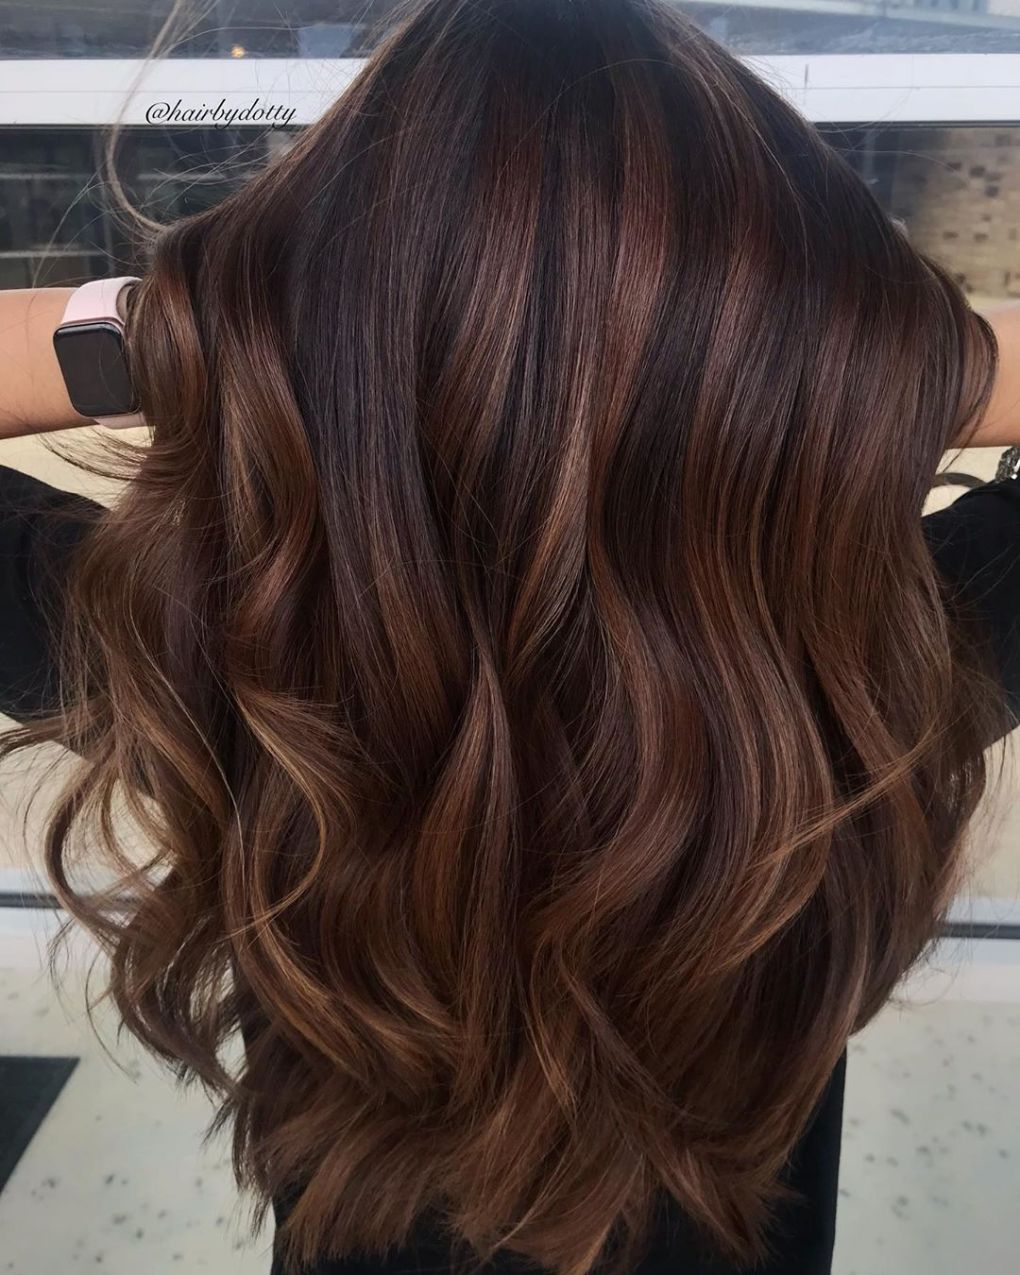 50 Best Hair Colors – New Hair Color Ideas & Trends for 2020